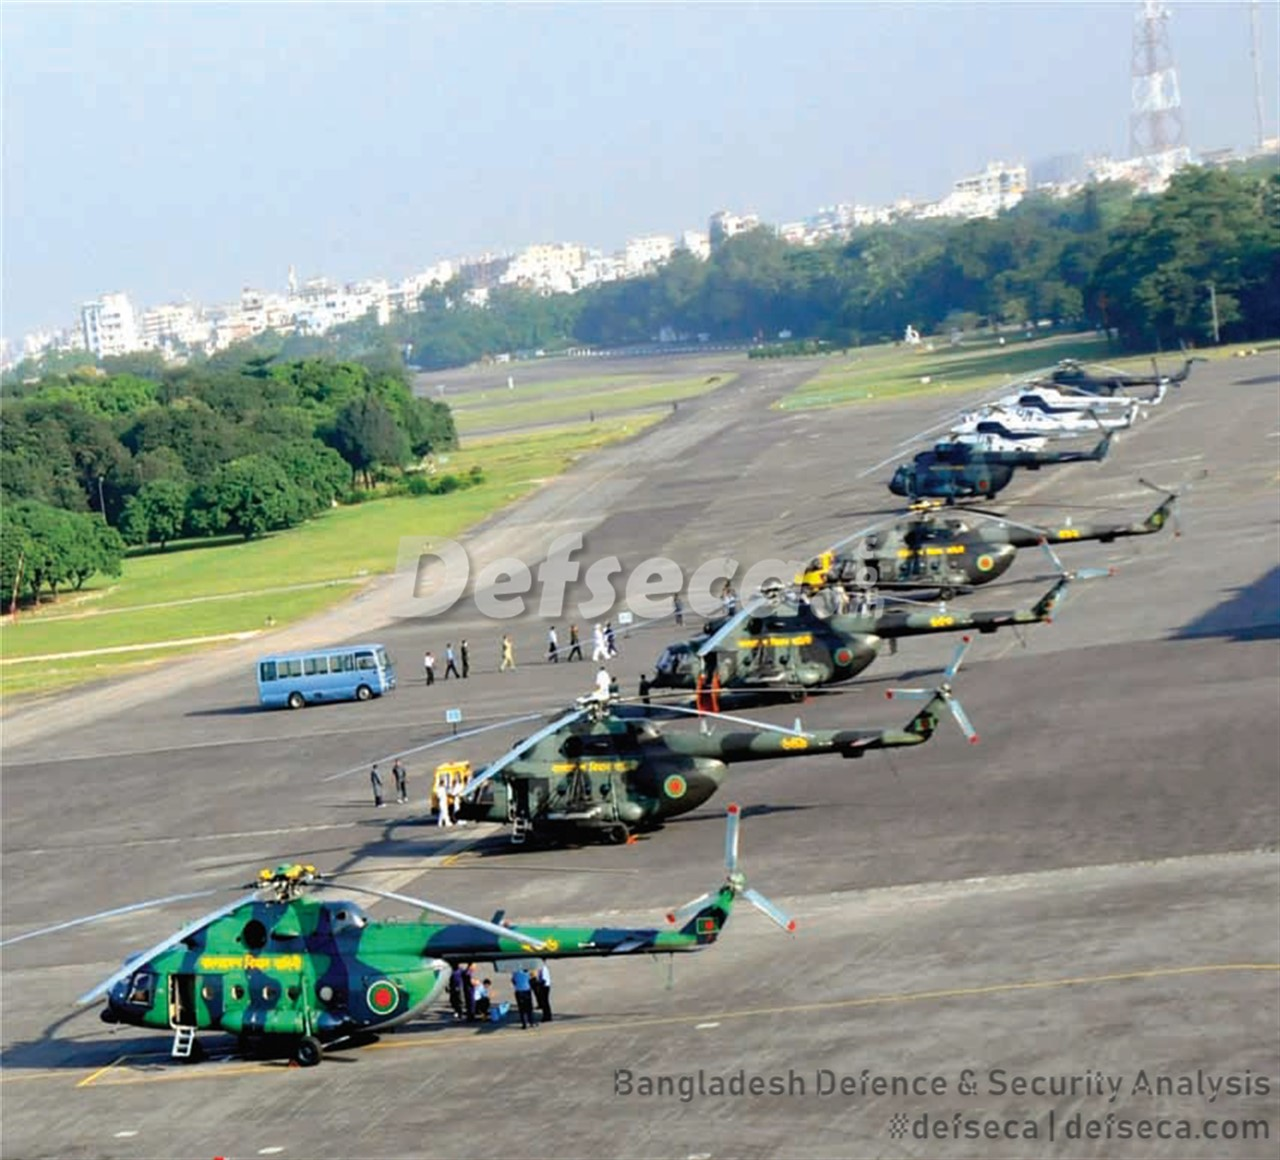 Over 40 helicopters being purchased by Bangladeshi forces